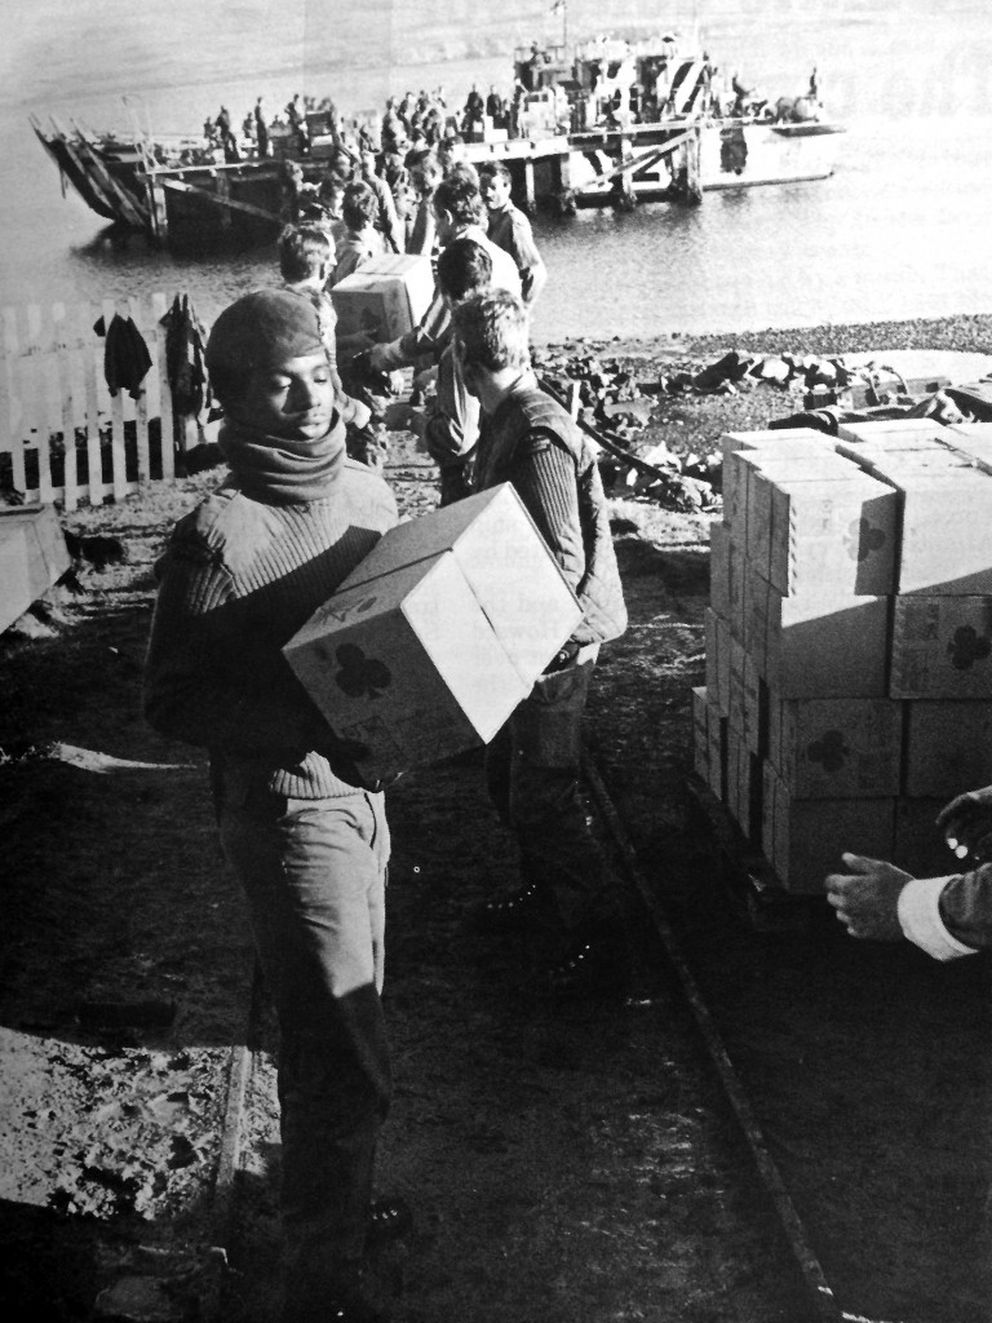 Royal Marines form a human chain to offload supplies in the Falkland Islands. Lack of infrastructure meant weapons and equipment loaded with forklifts and cranes in England had to be brought off the ships by hand. (Crown Copyright)